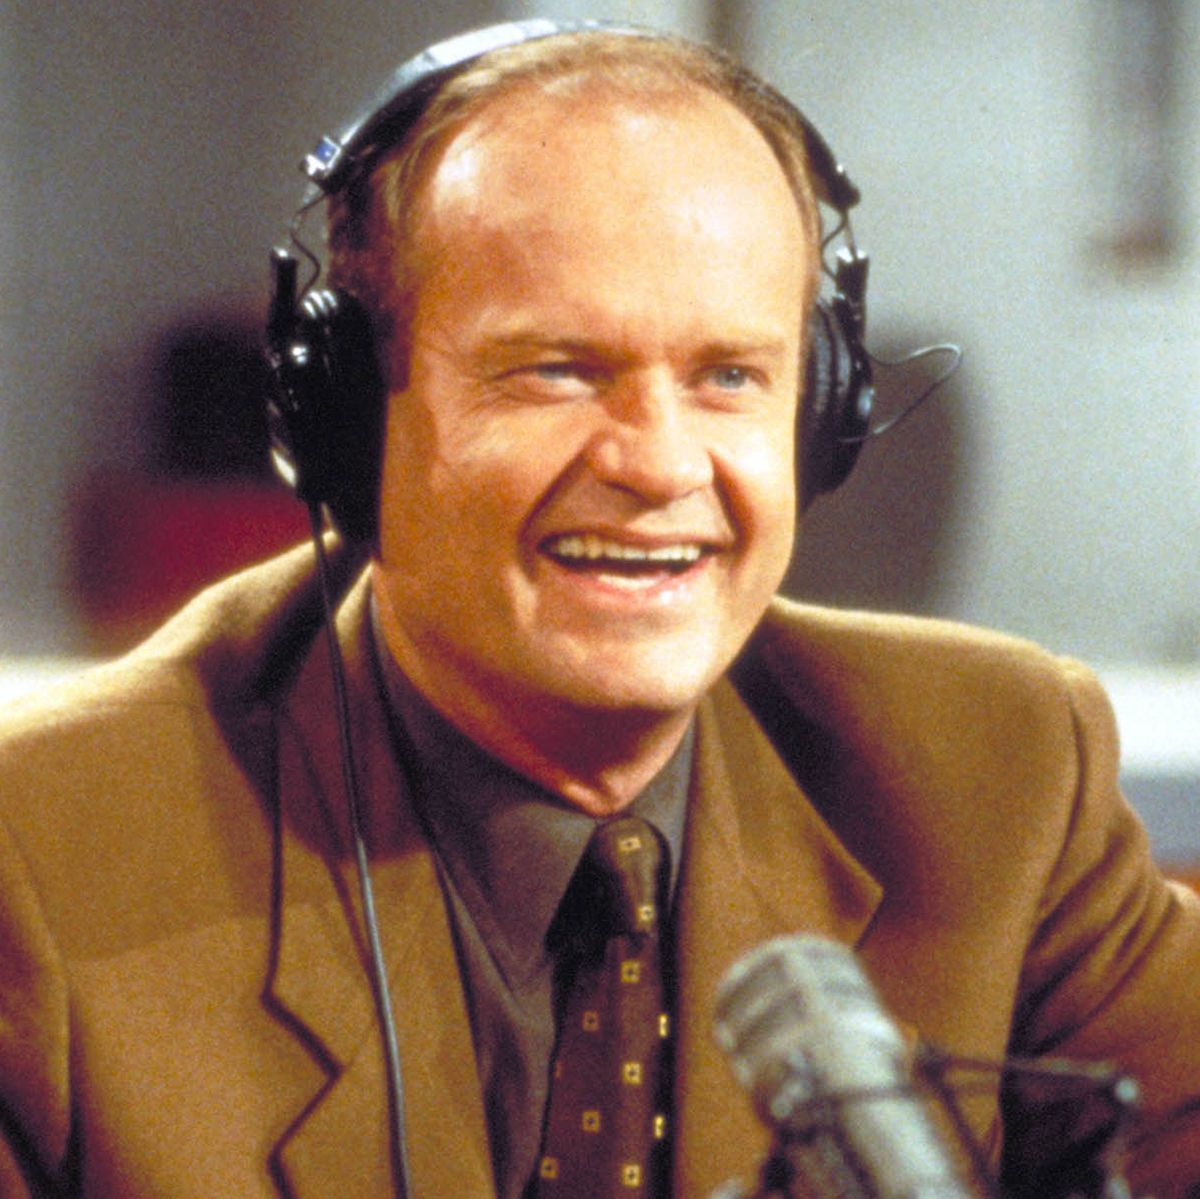 63a26a96ab1b3df393bf0d60819a829f14 25 frasier.rsquare.w1200 The Cast of Frasier Then And Now